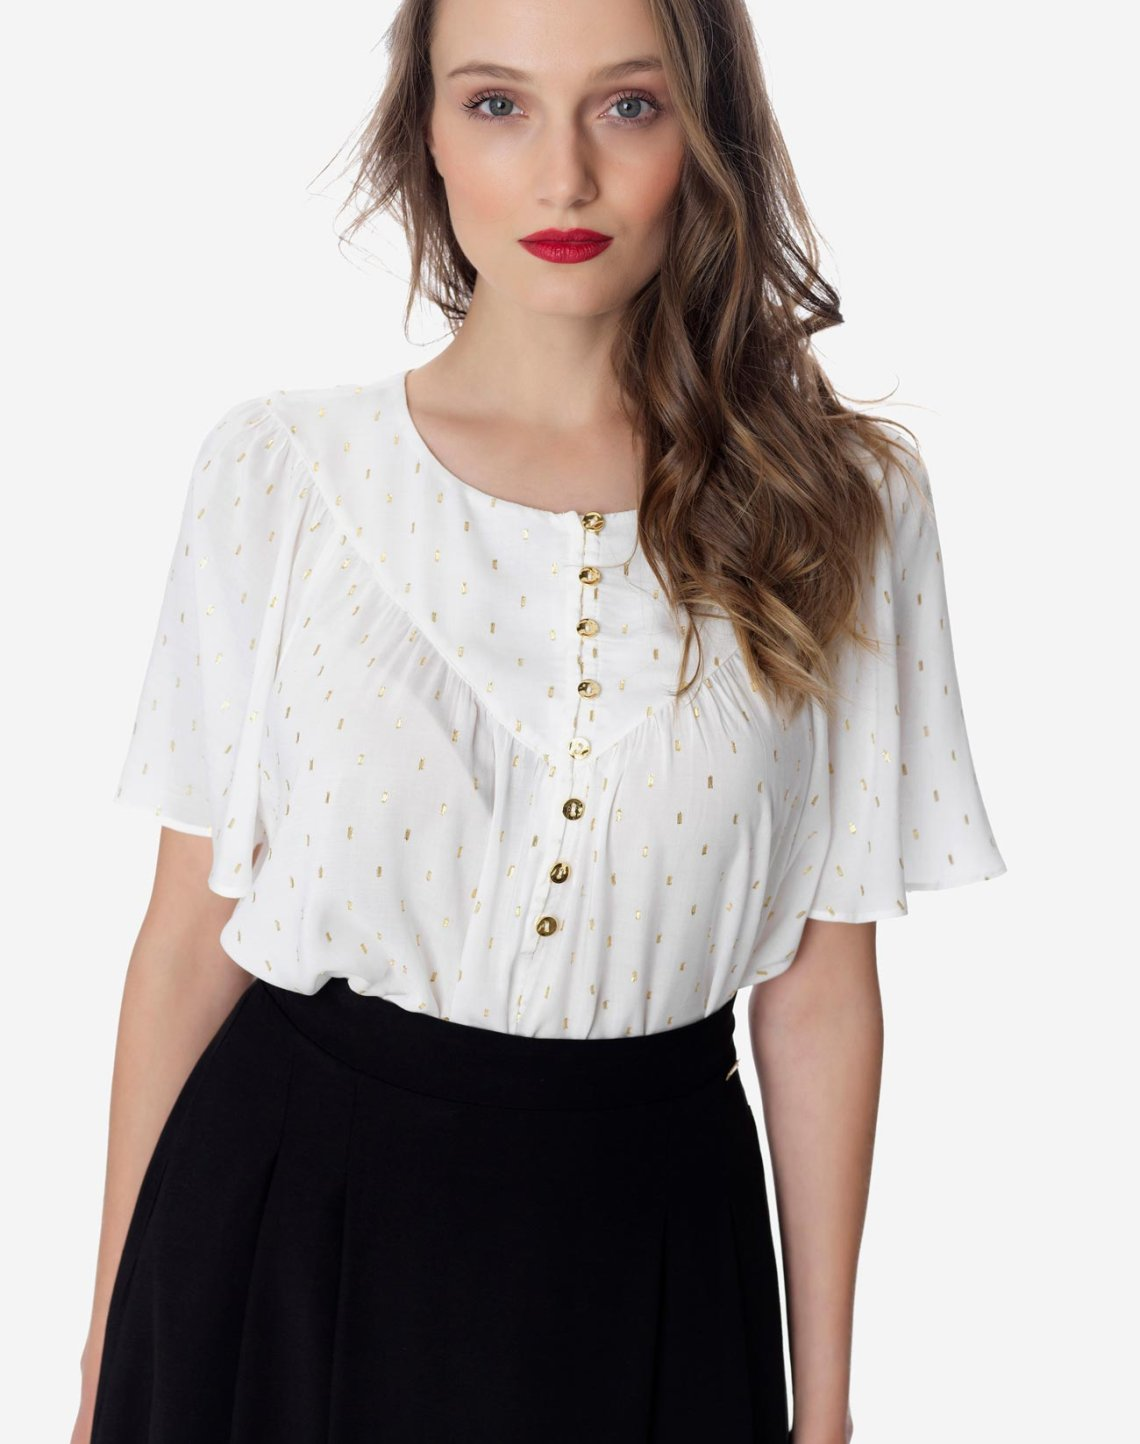 Top with gold detail